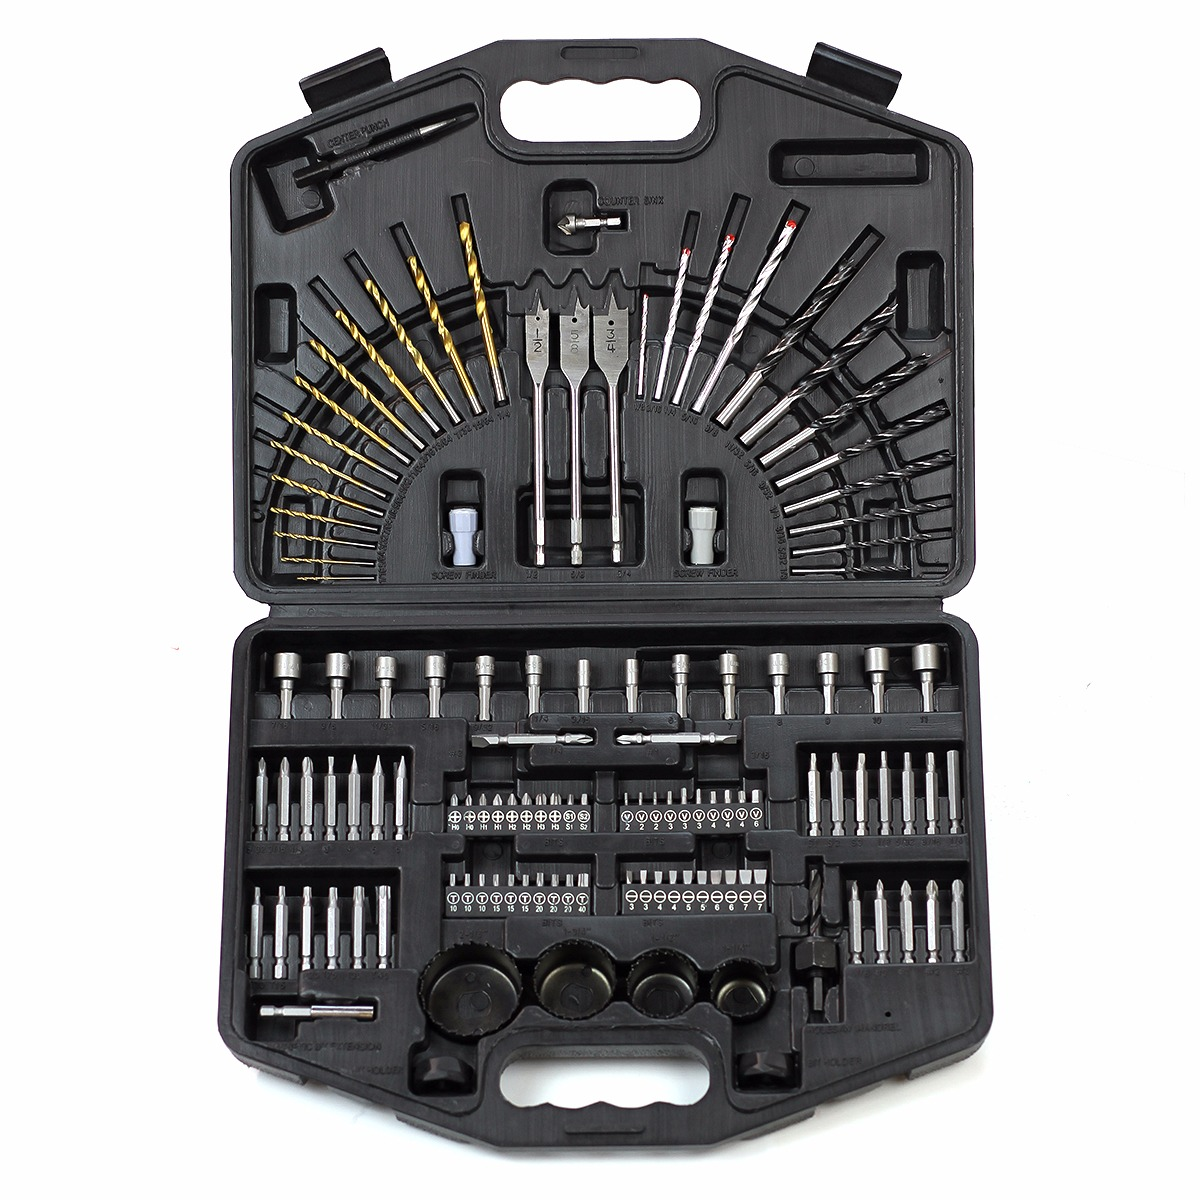 Master Wood Masonry HSS Drill Bits Nut Drivers Hole Saws Tool Set, 125PC